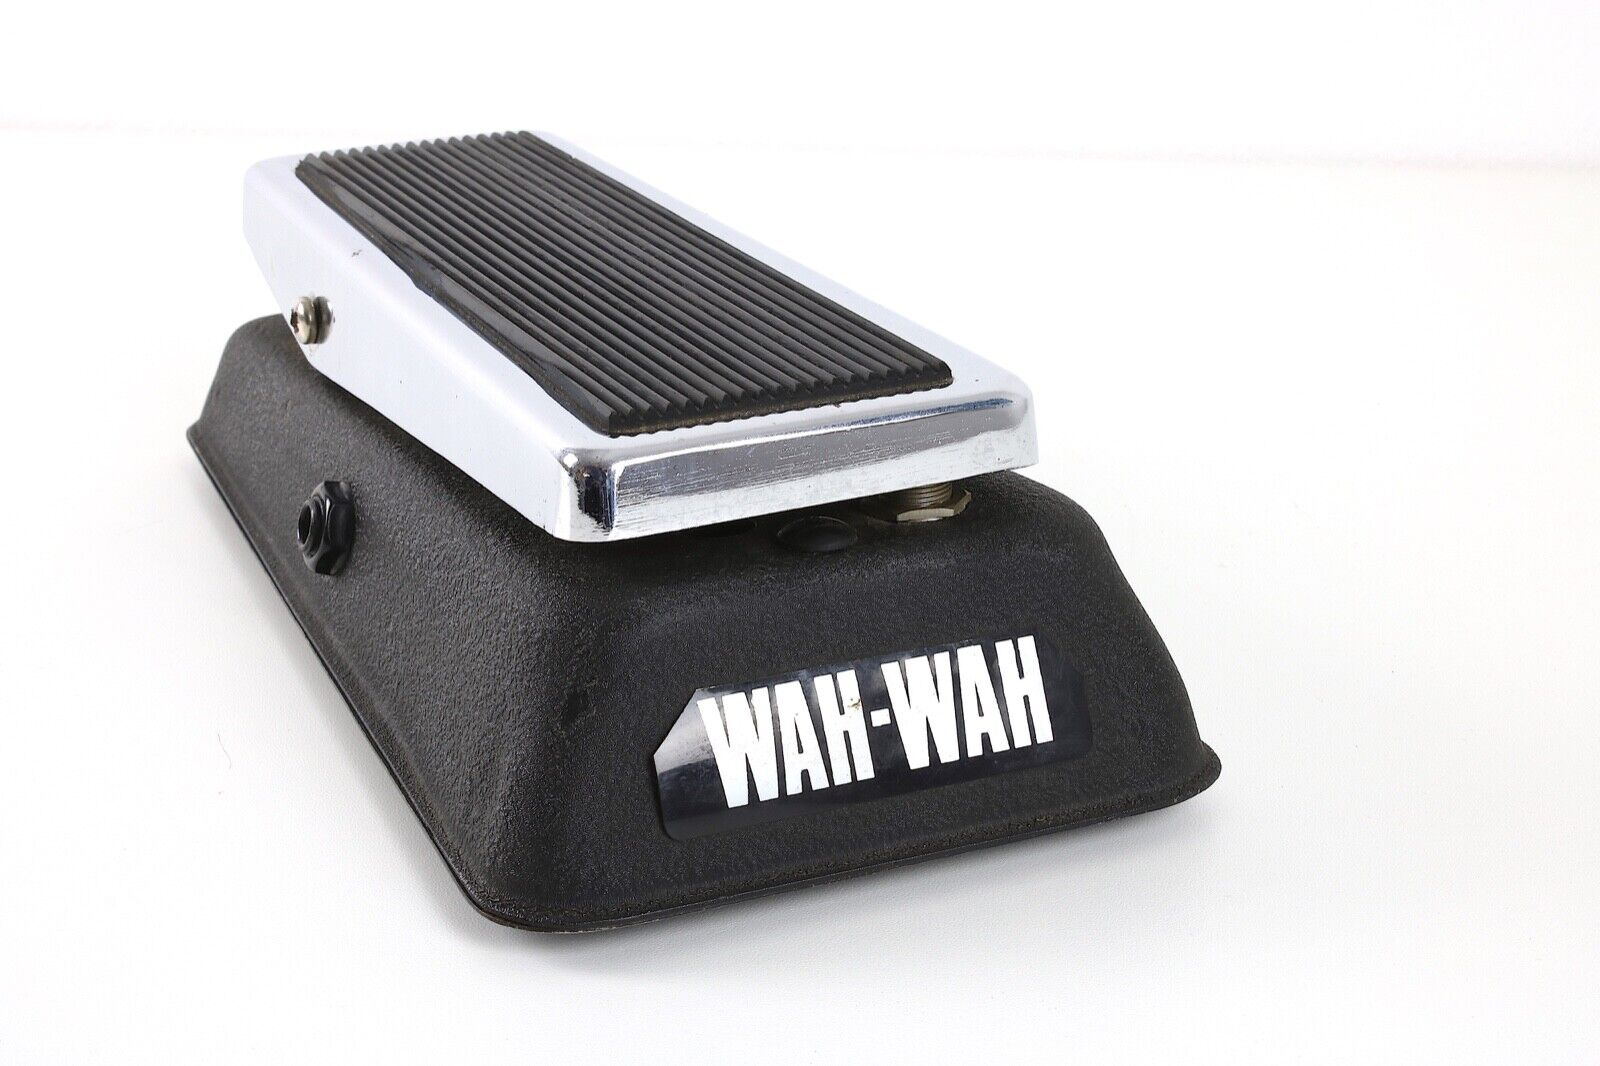 WAH WAH Pedal Farbesound   Vintage   60ies   70ies   Good condition   Rare